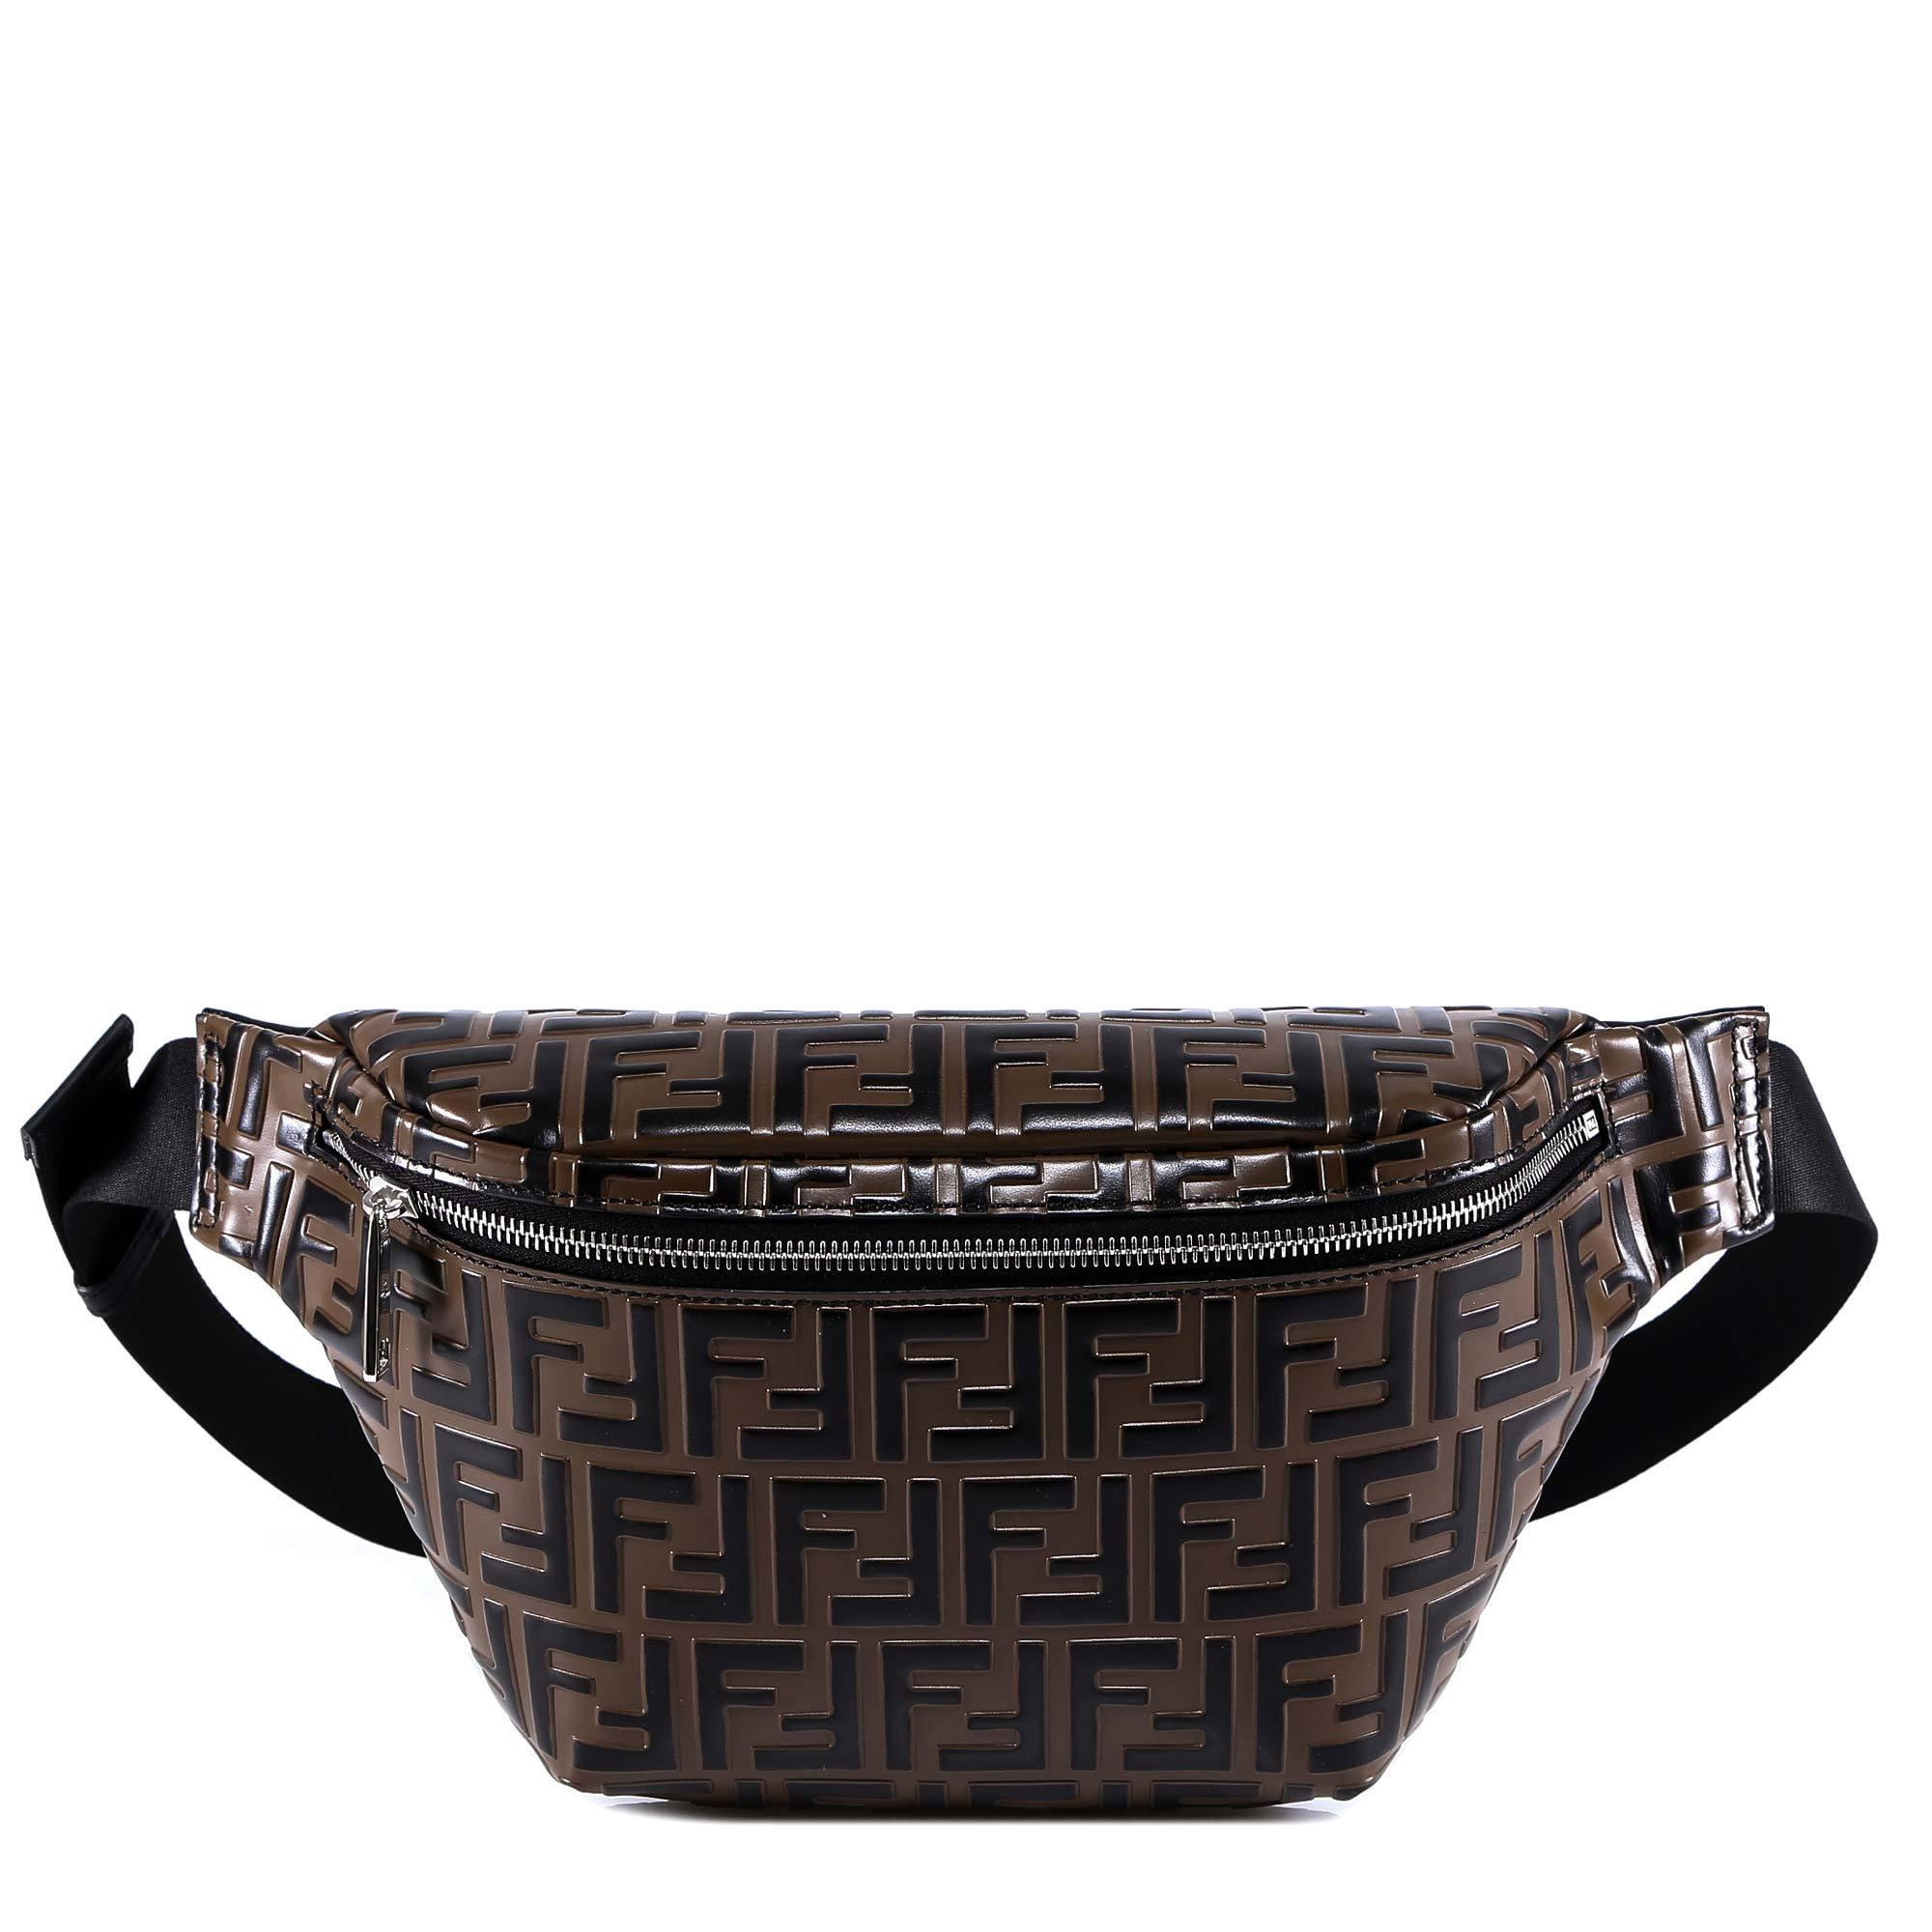 f1a40a9943 Fendi Ff Monogram Belt Bag in Brown for Men - Lyst